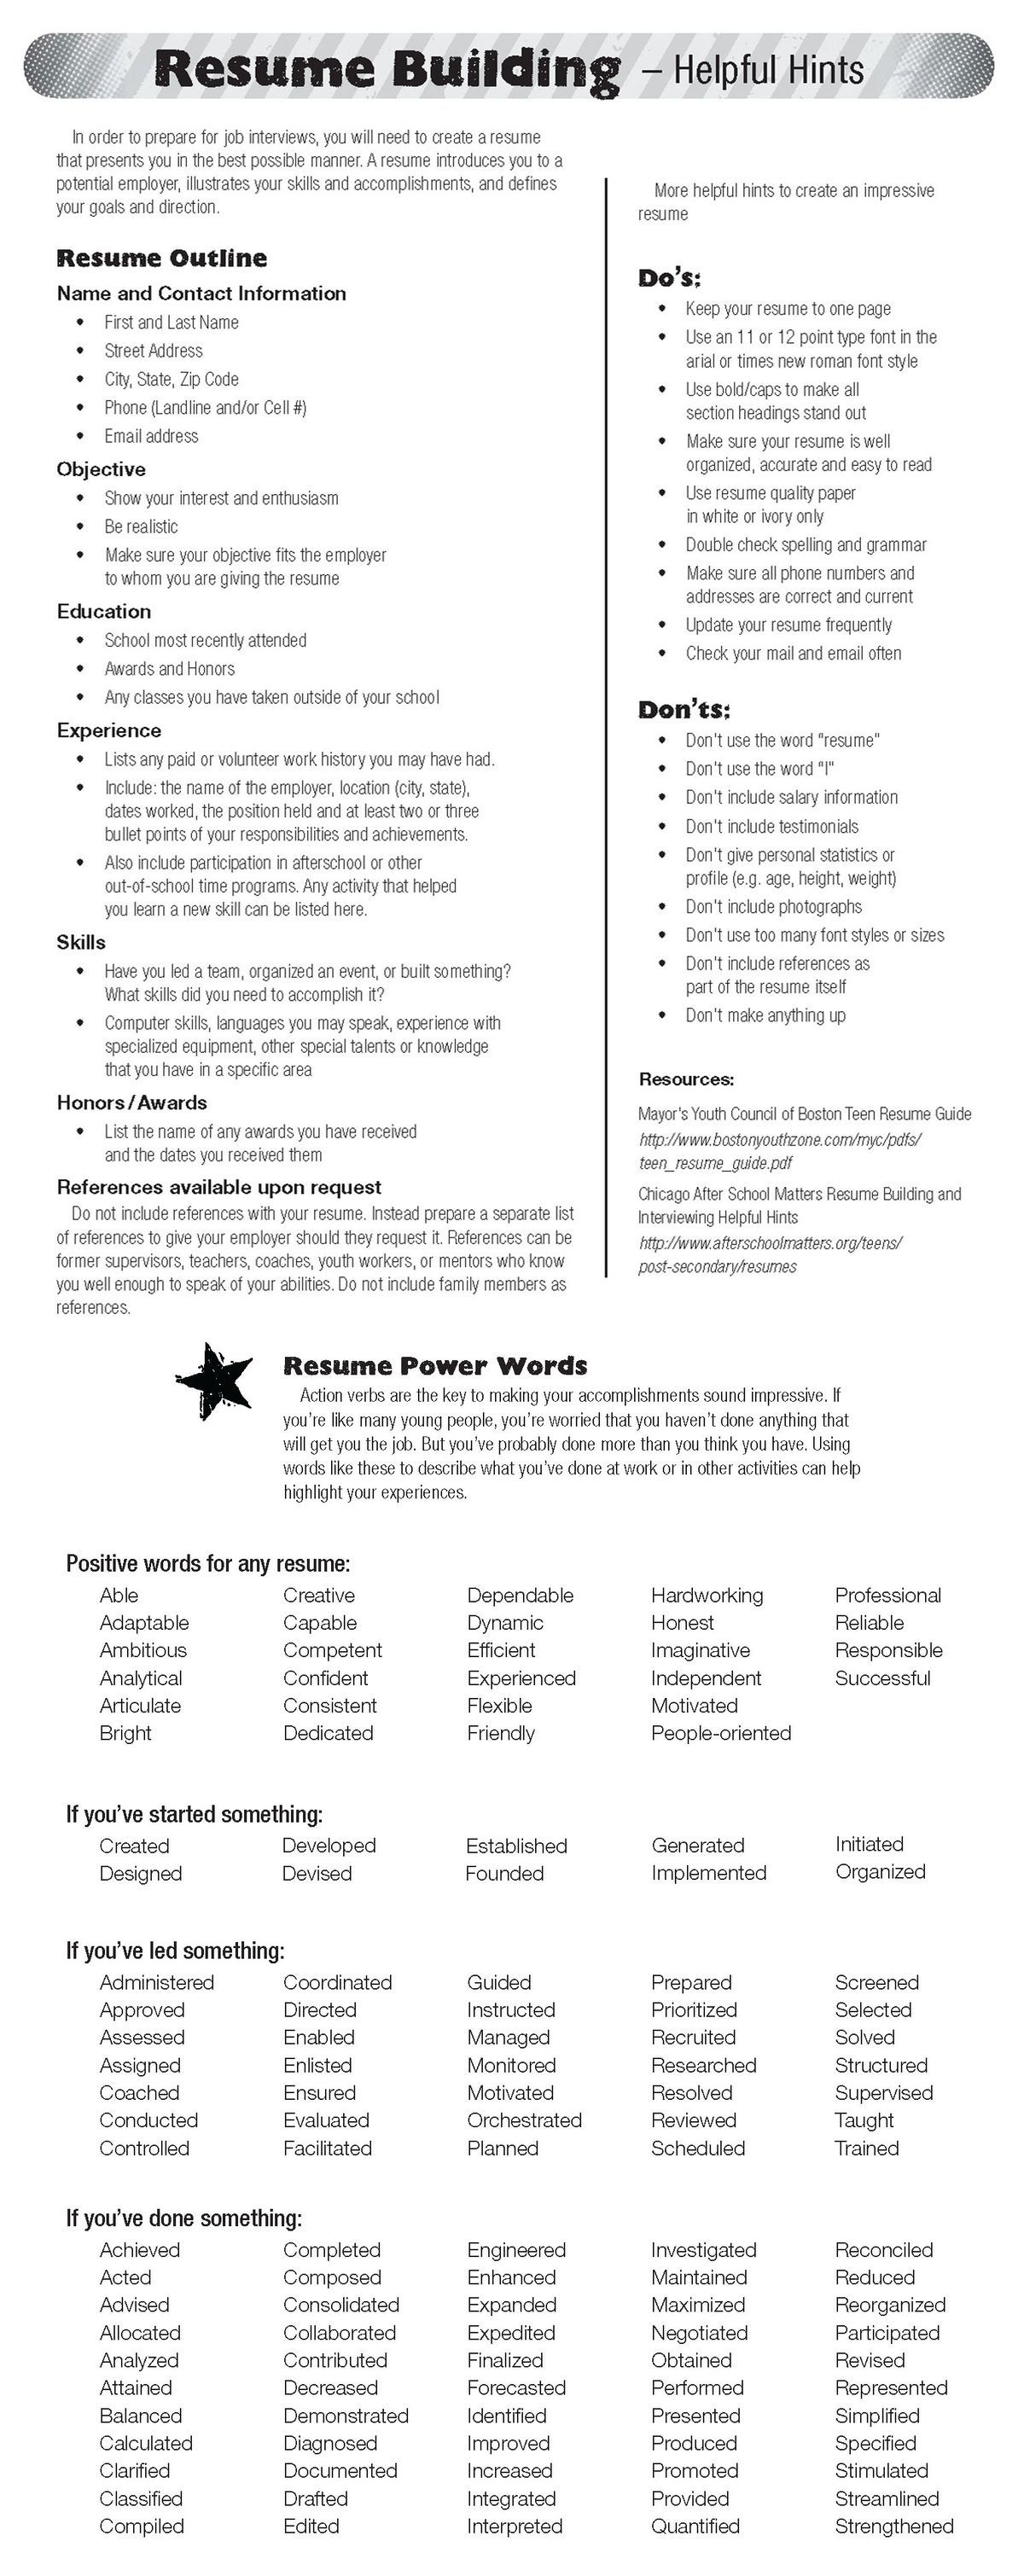 List Of Resume Skills New Pincarlie Schmaeling On College  Pinterest  Job Interviews .